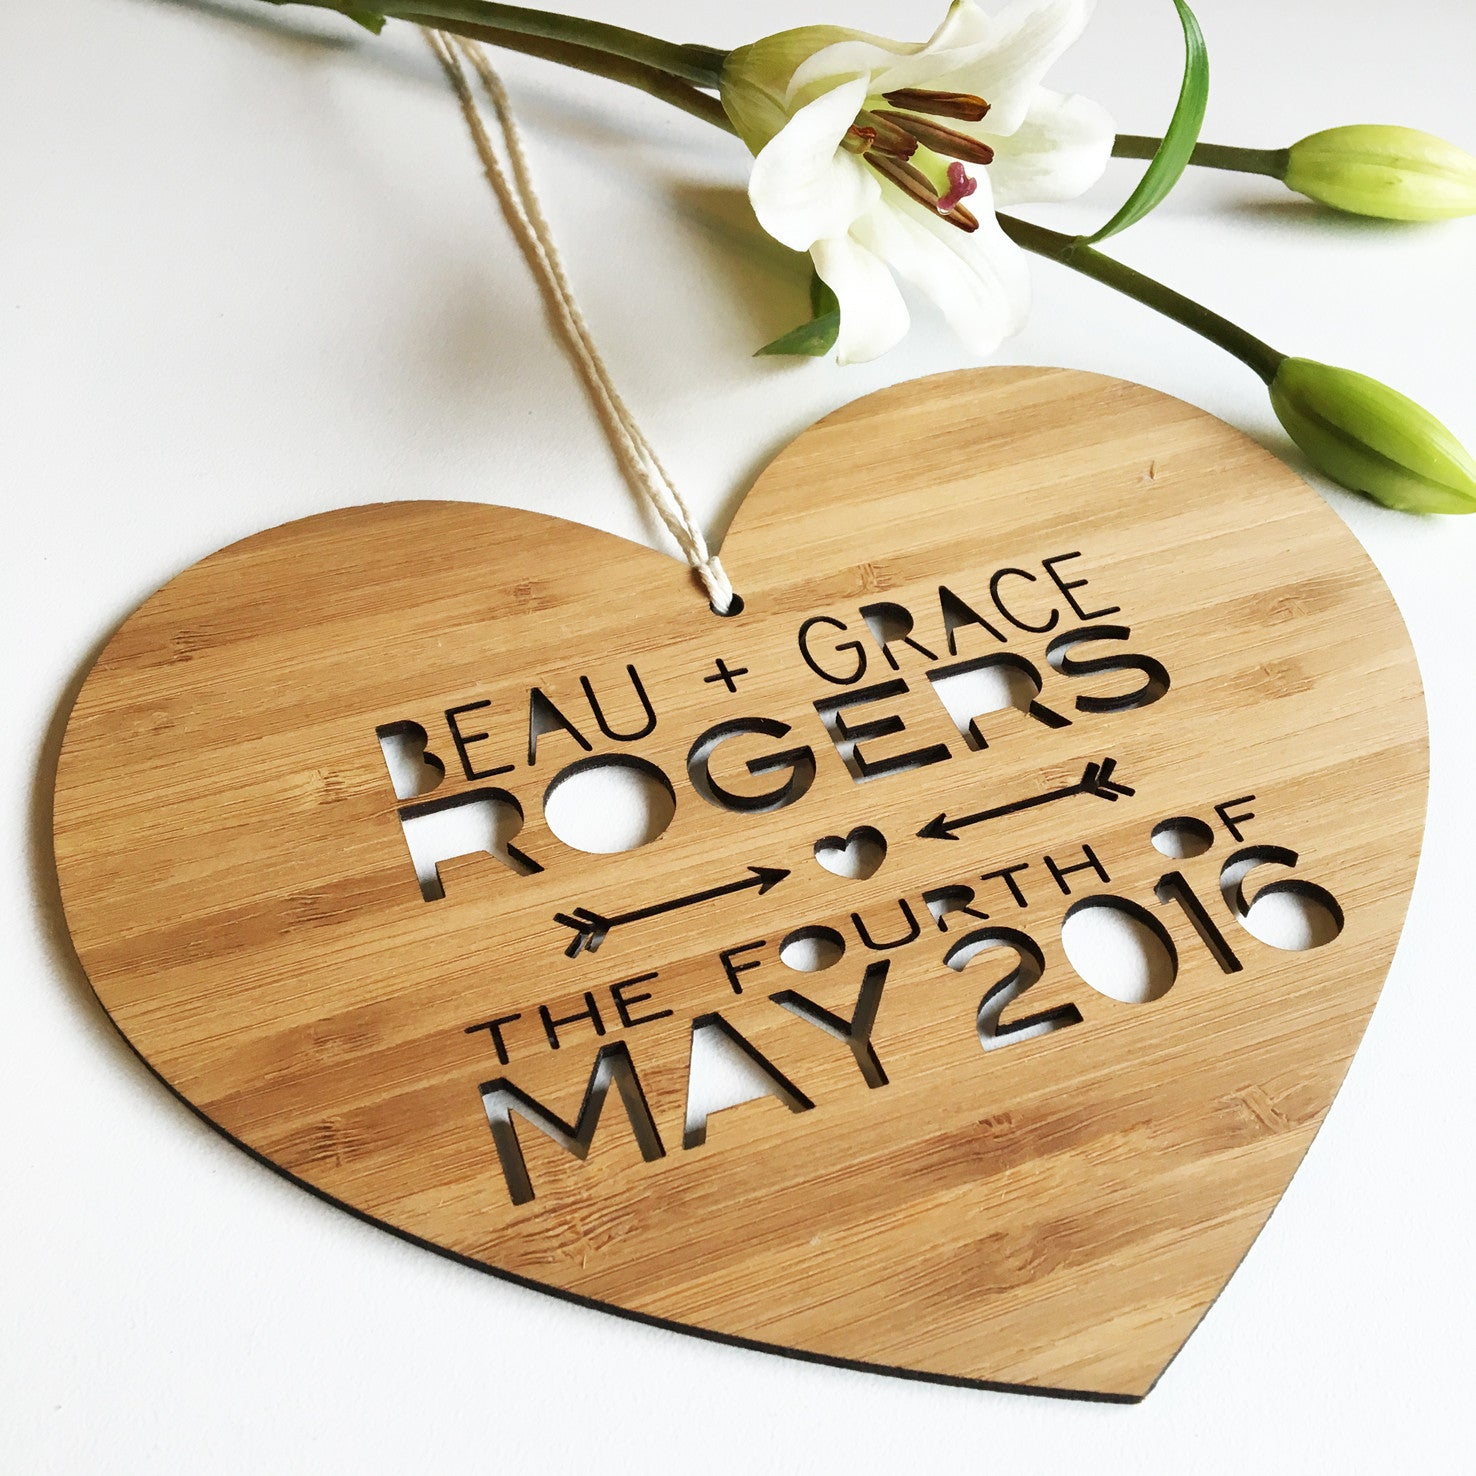 Heart Wedding Wall Hanging.jpg